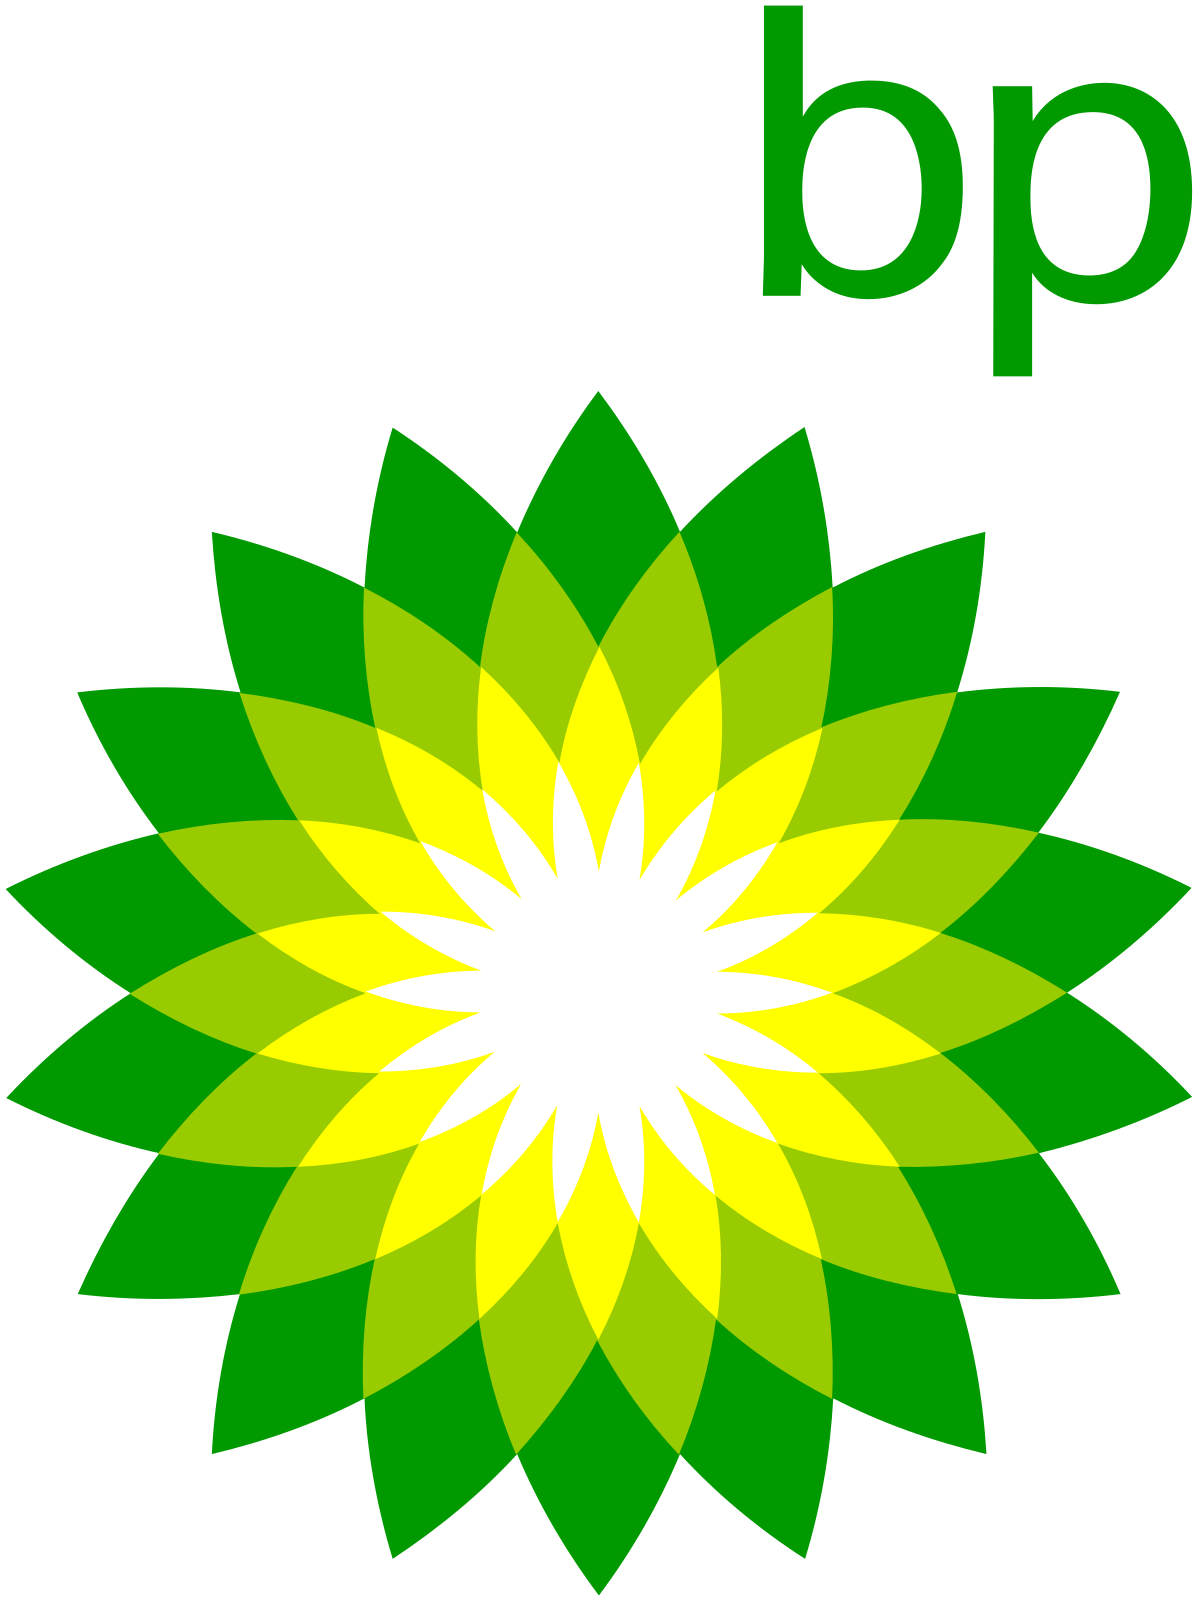 Bp wikipedia . Oil clipart spilled chemical